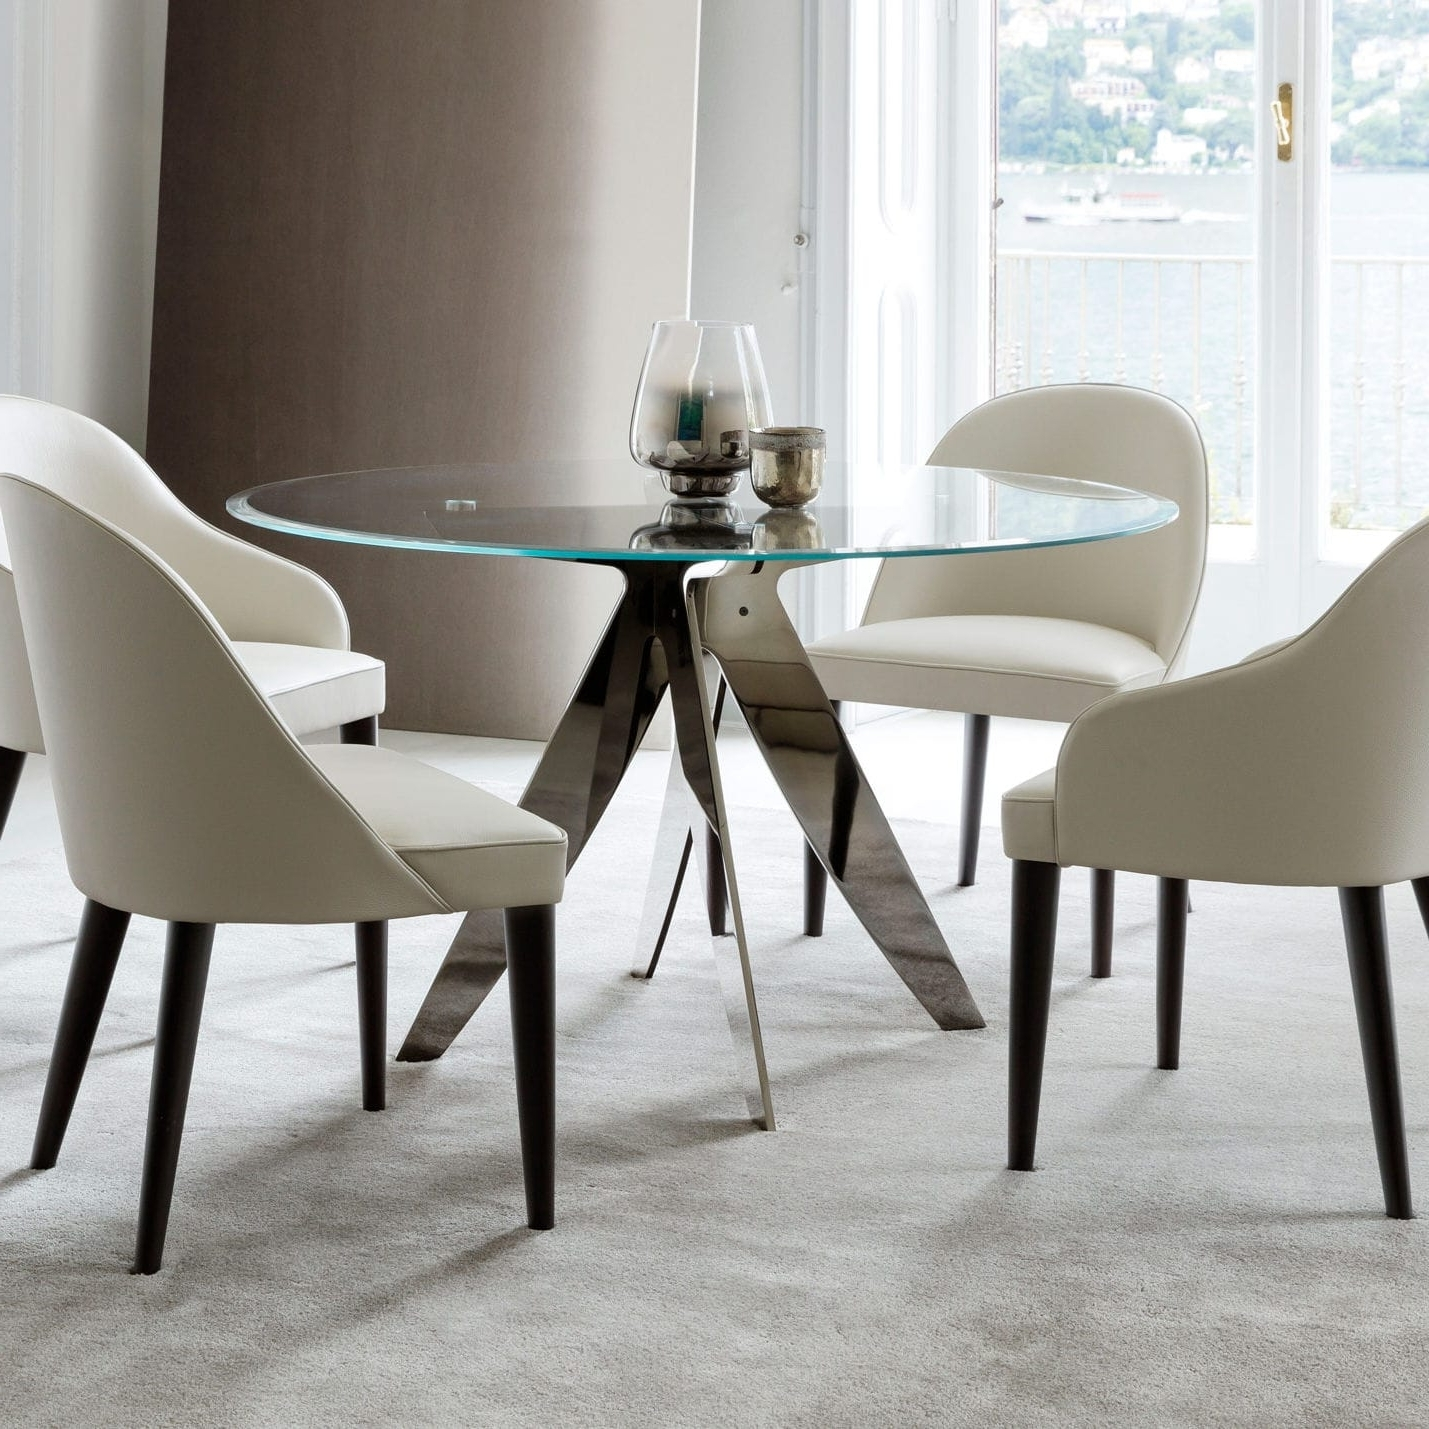 Crystal Dining Tables With Regard To Fashionable Contemporary Dining Table / Crystal / Round – Ring Rotondo – Berto (View 7 of 25)